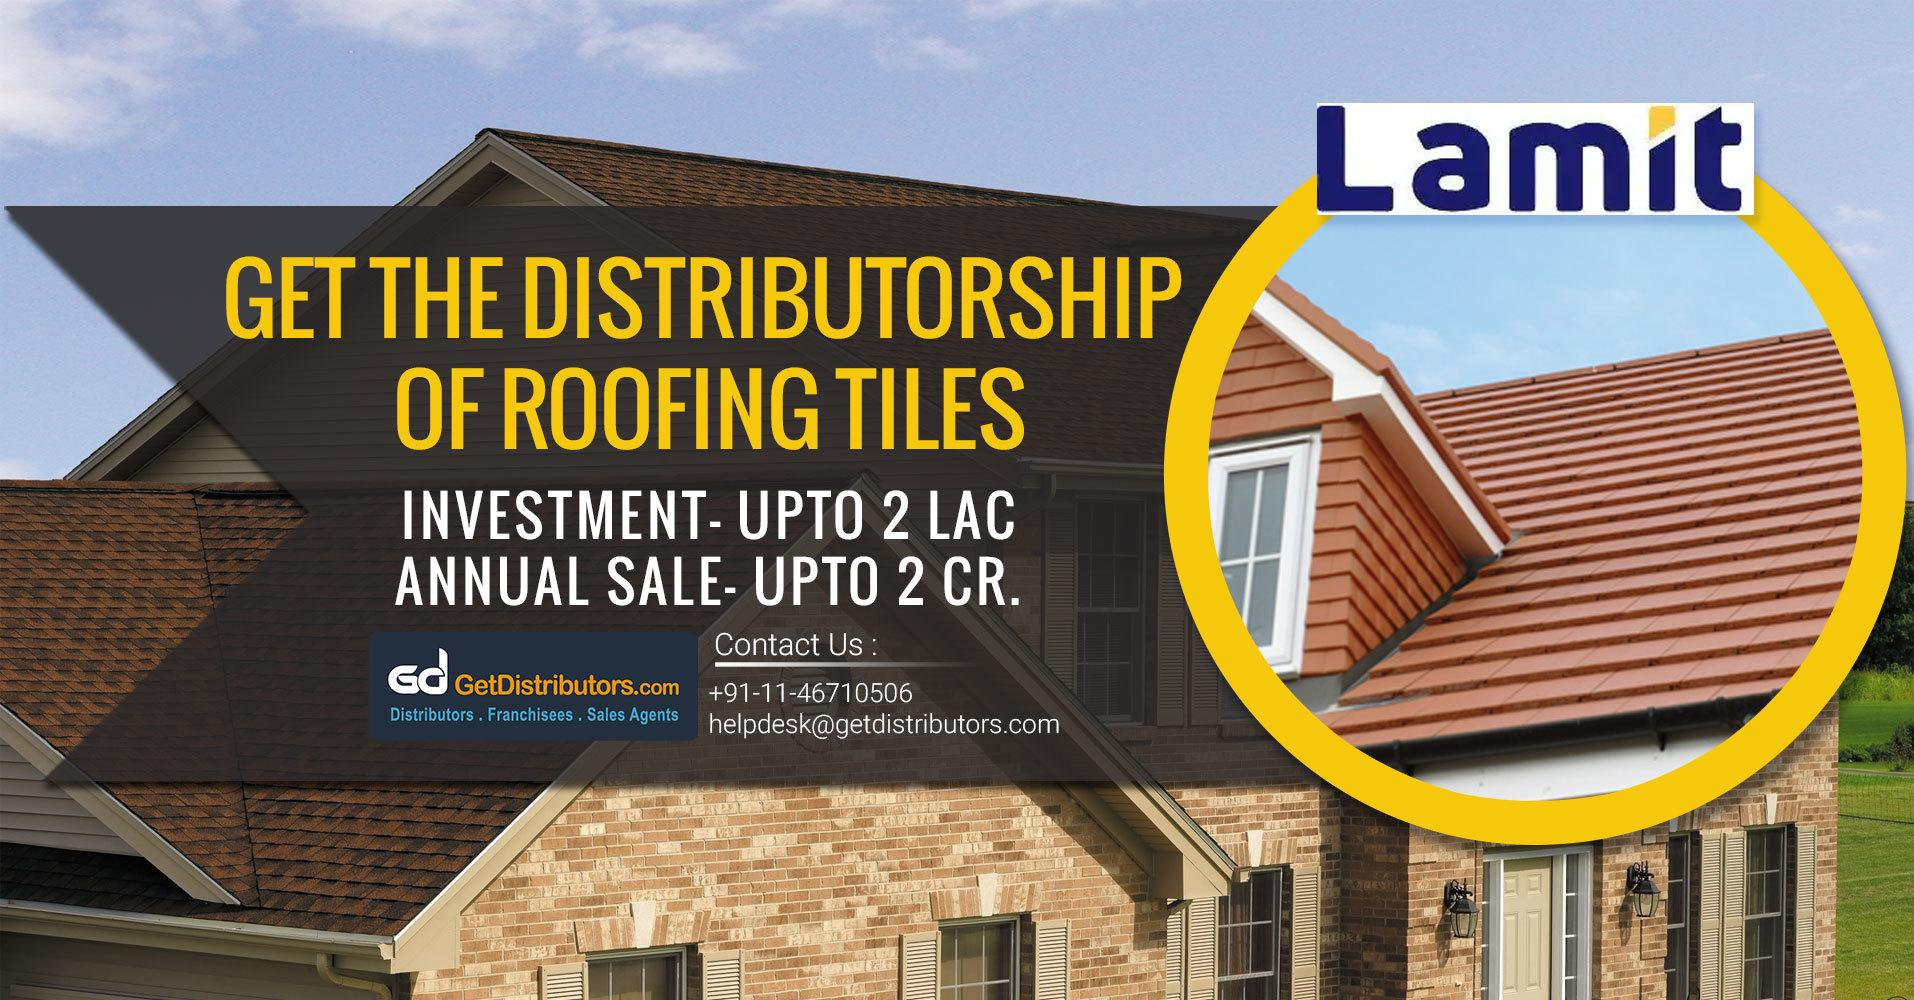 Get Distributorship of Roofing Tiles & Cladding At Affordable Prices